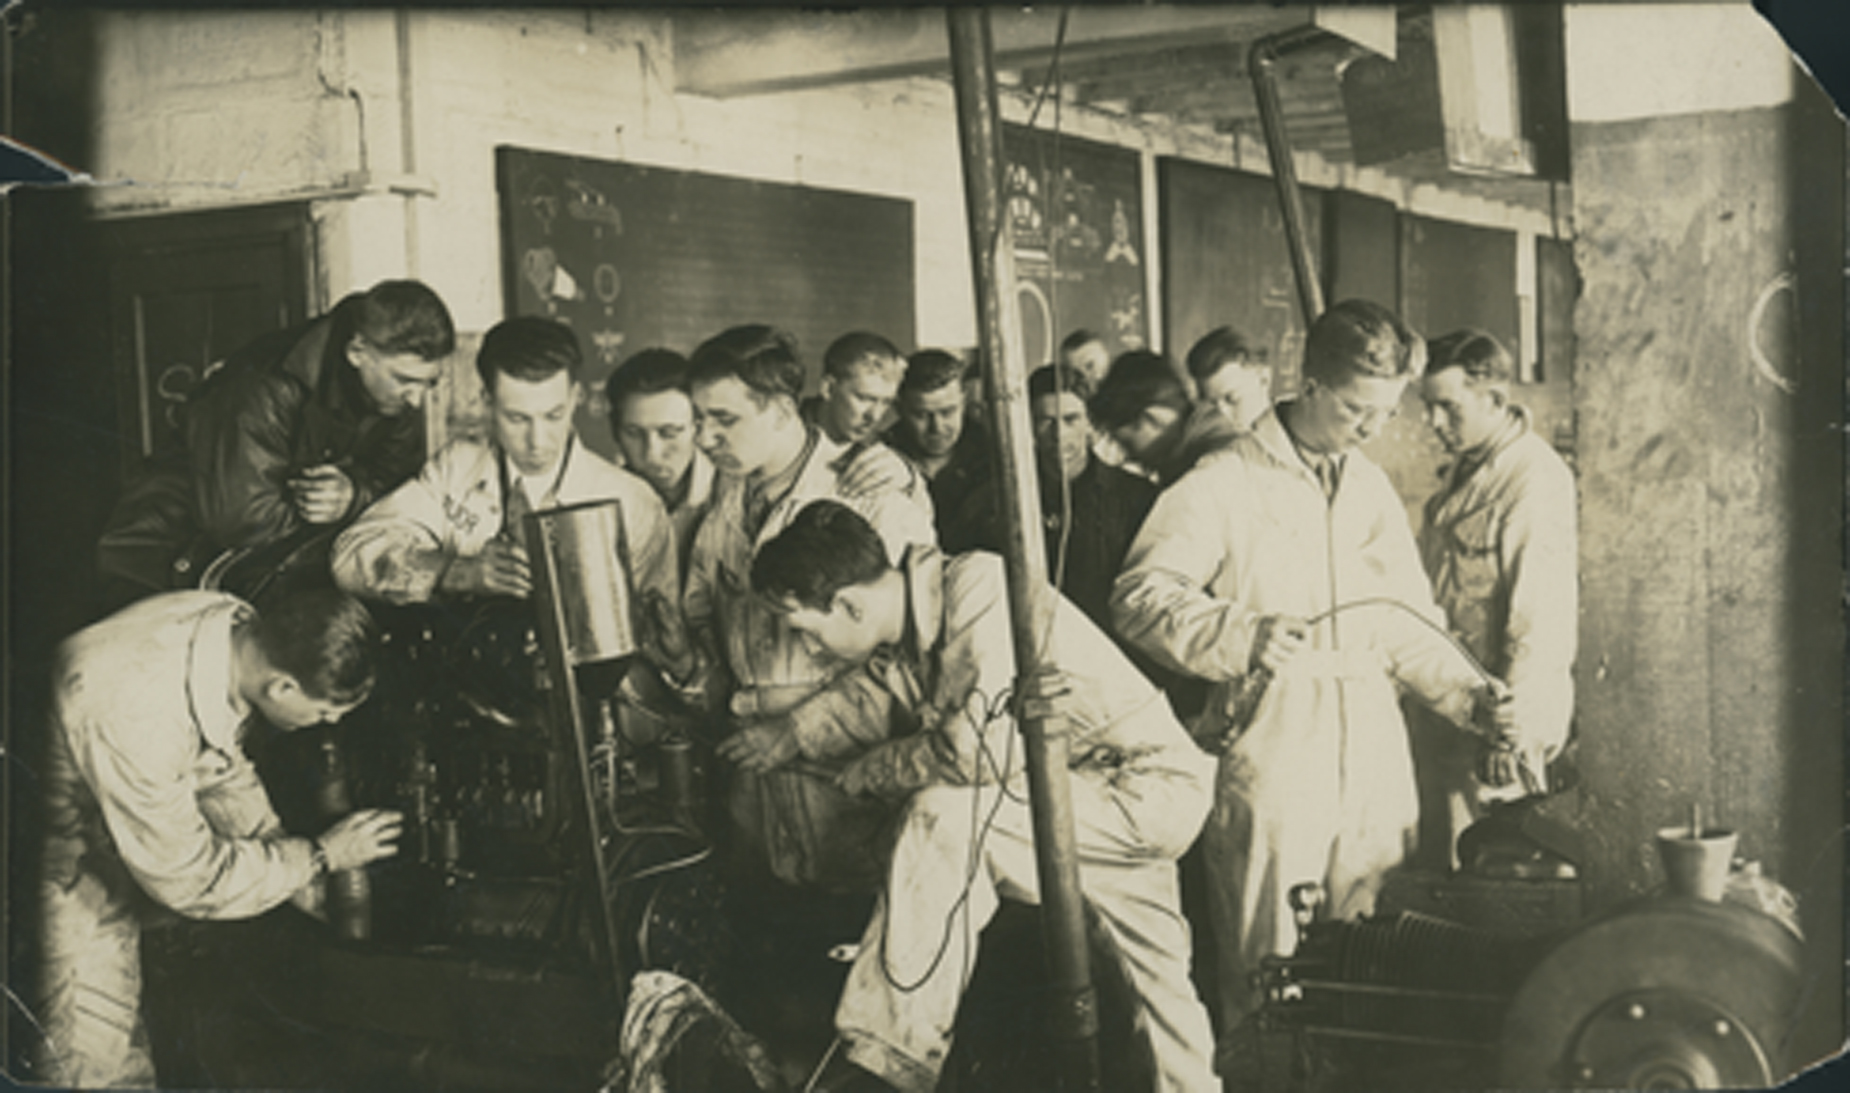 Harry Byers instructing students